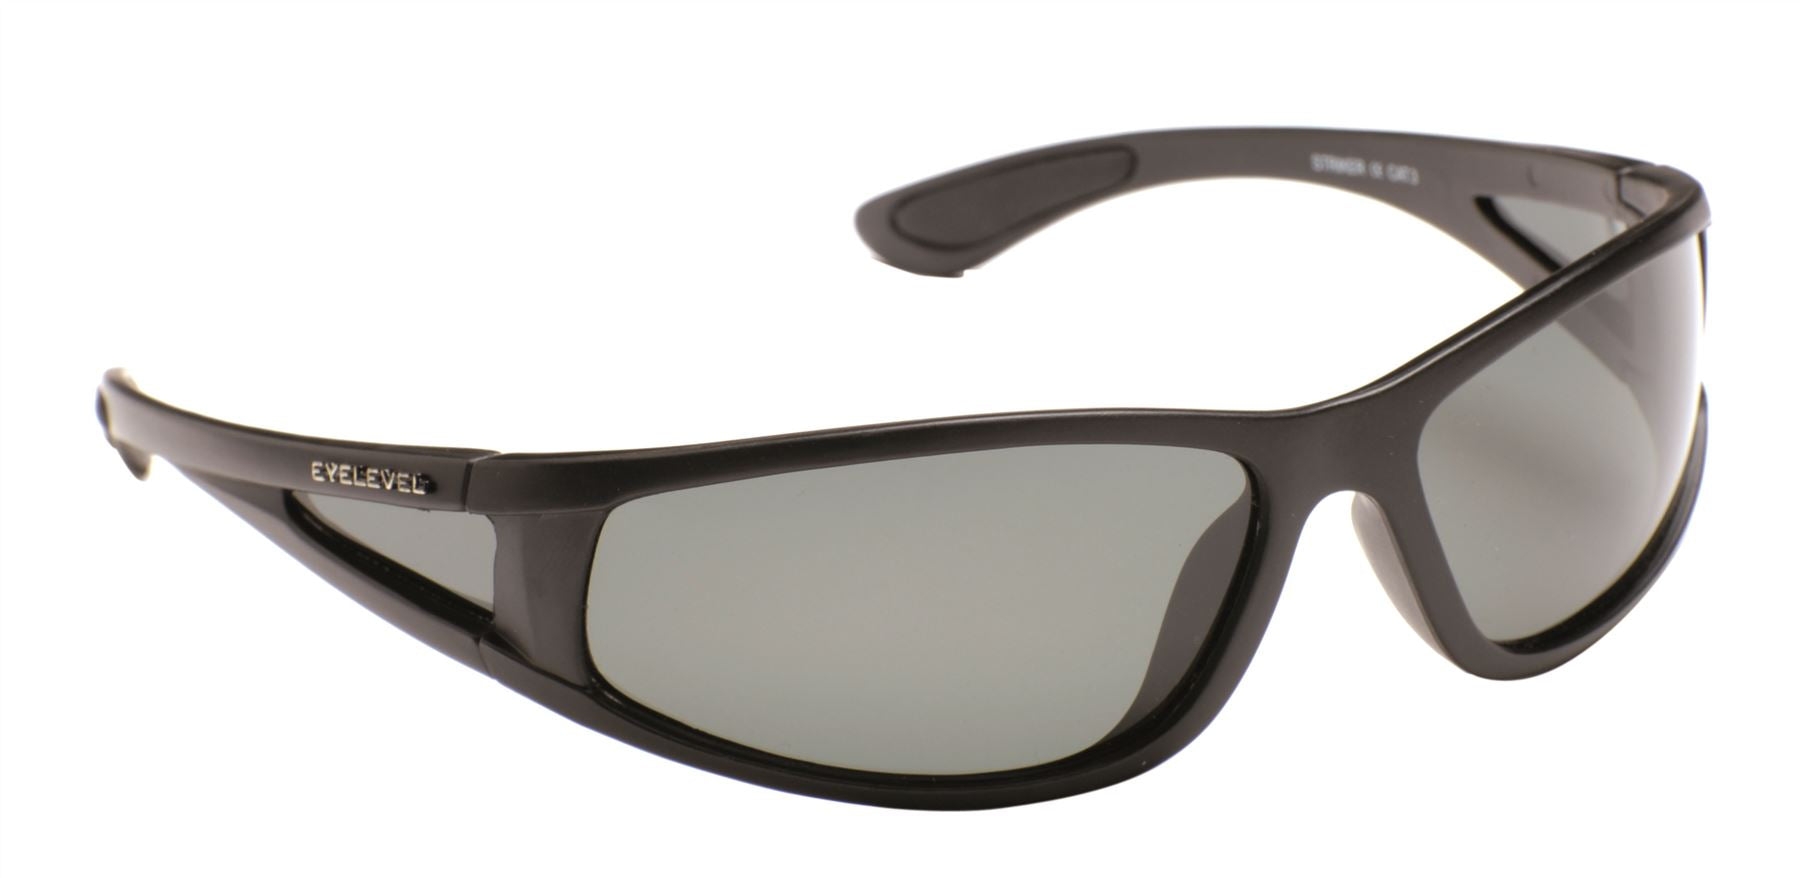 Striker Sunglasses with Side Shield - Grey Lens